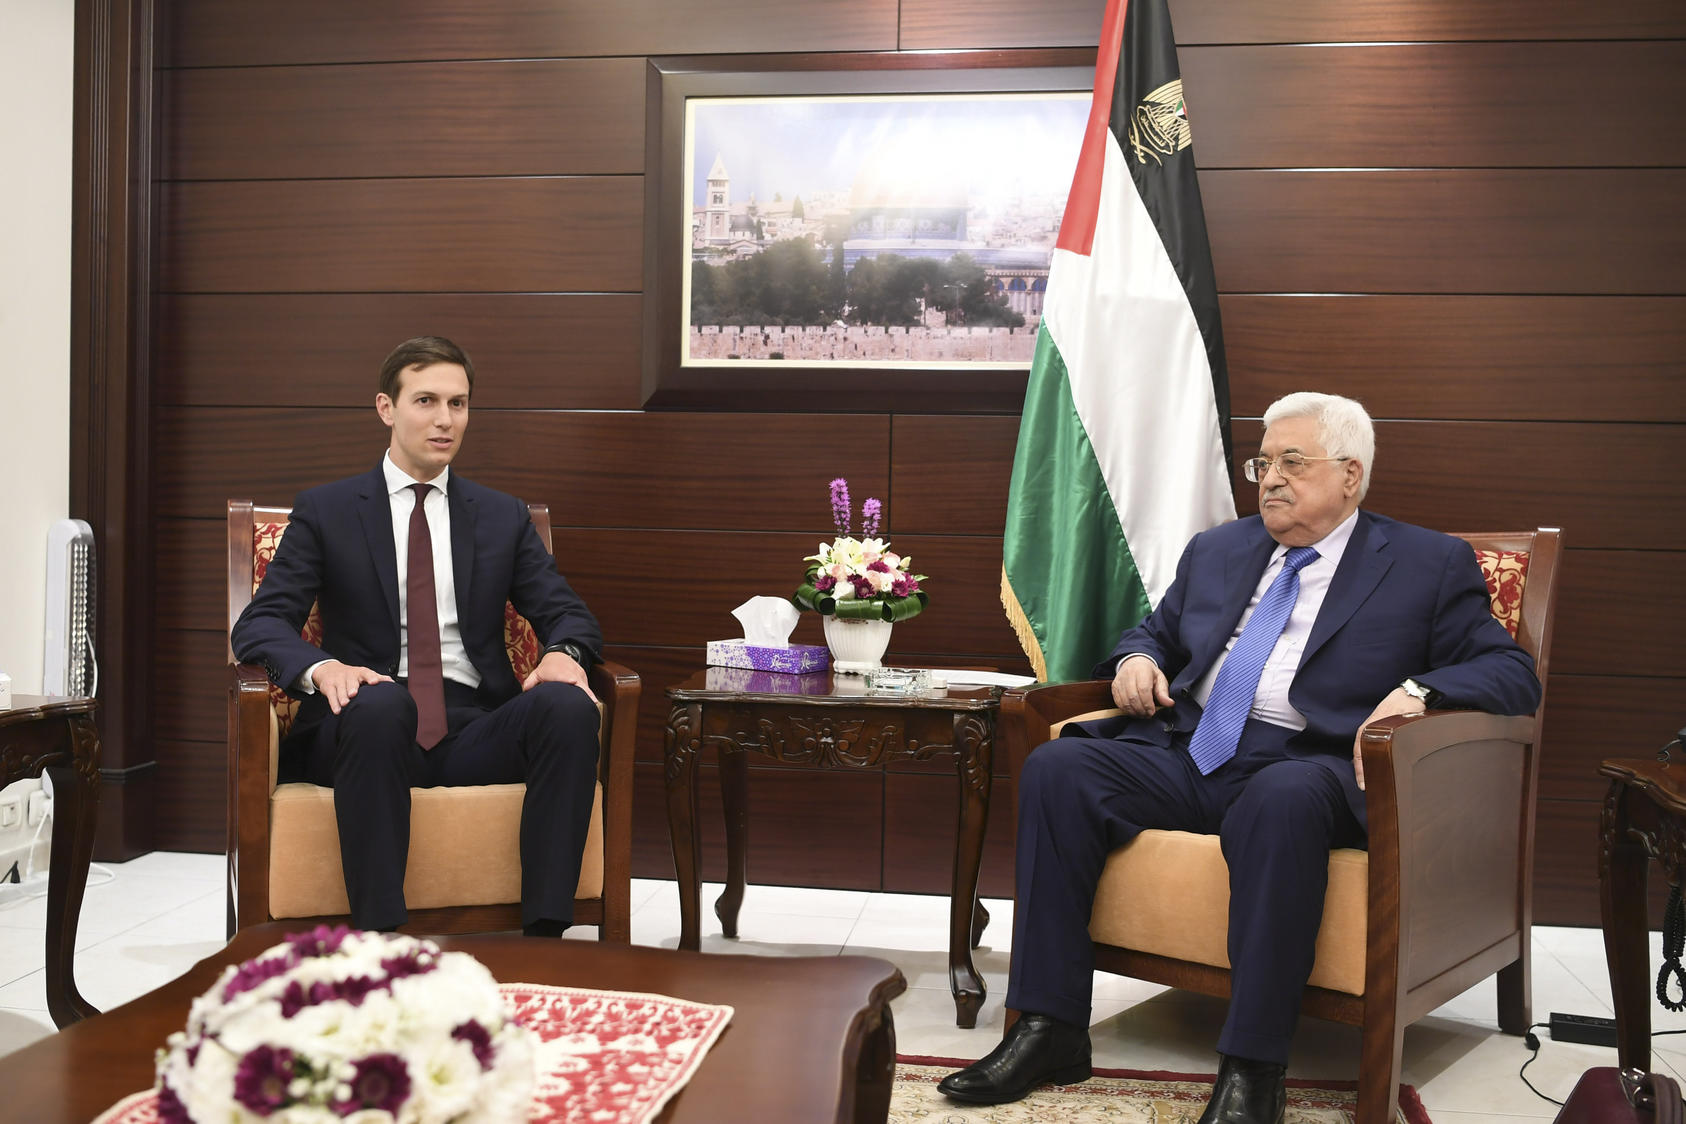 In a handout photo, Jared Kushner, left, President Donald Trump's senior adviser, meets with President Mahmoud Abbas of the Palestinian Authority in Ramallah, West Bank, Aug. 24, 2017.